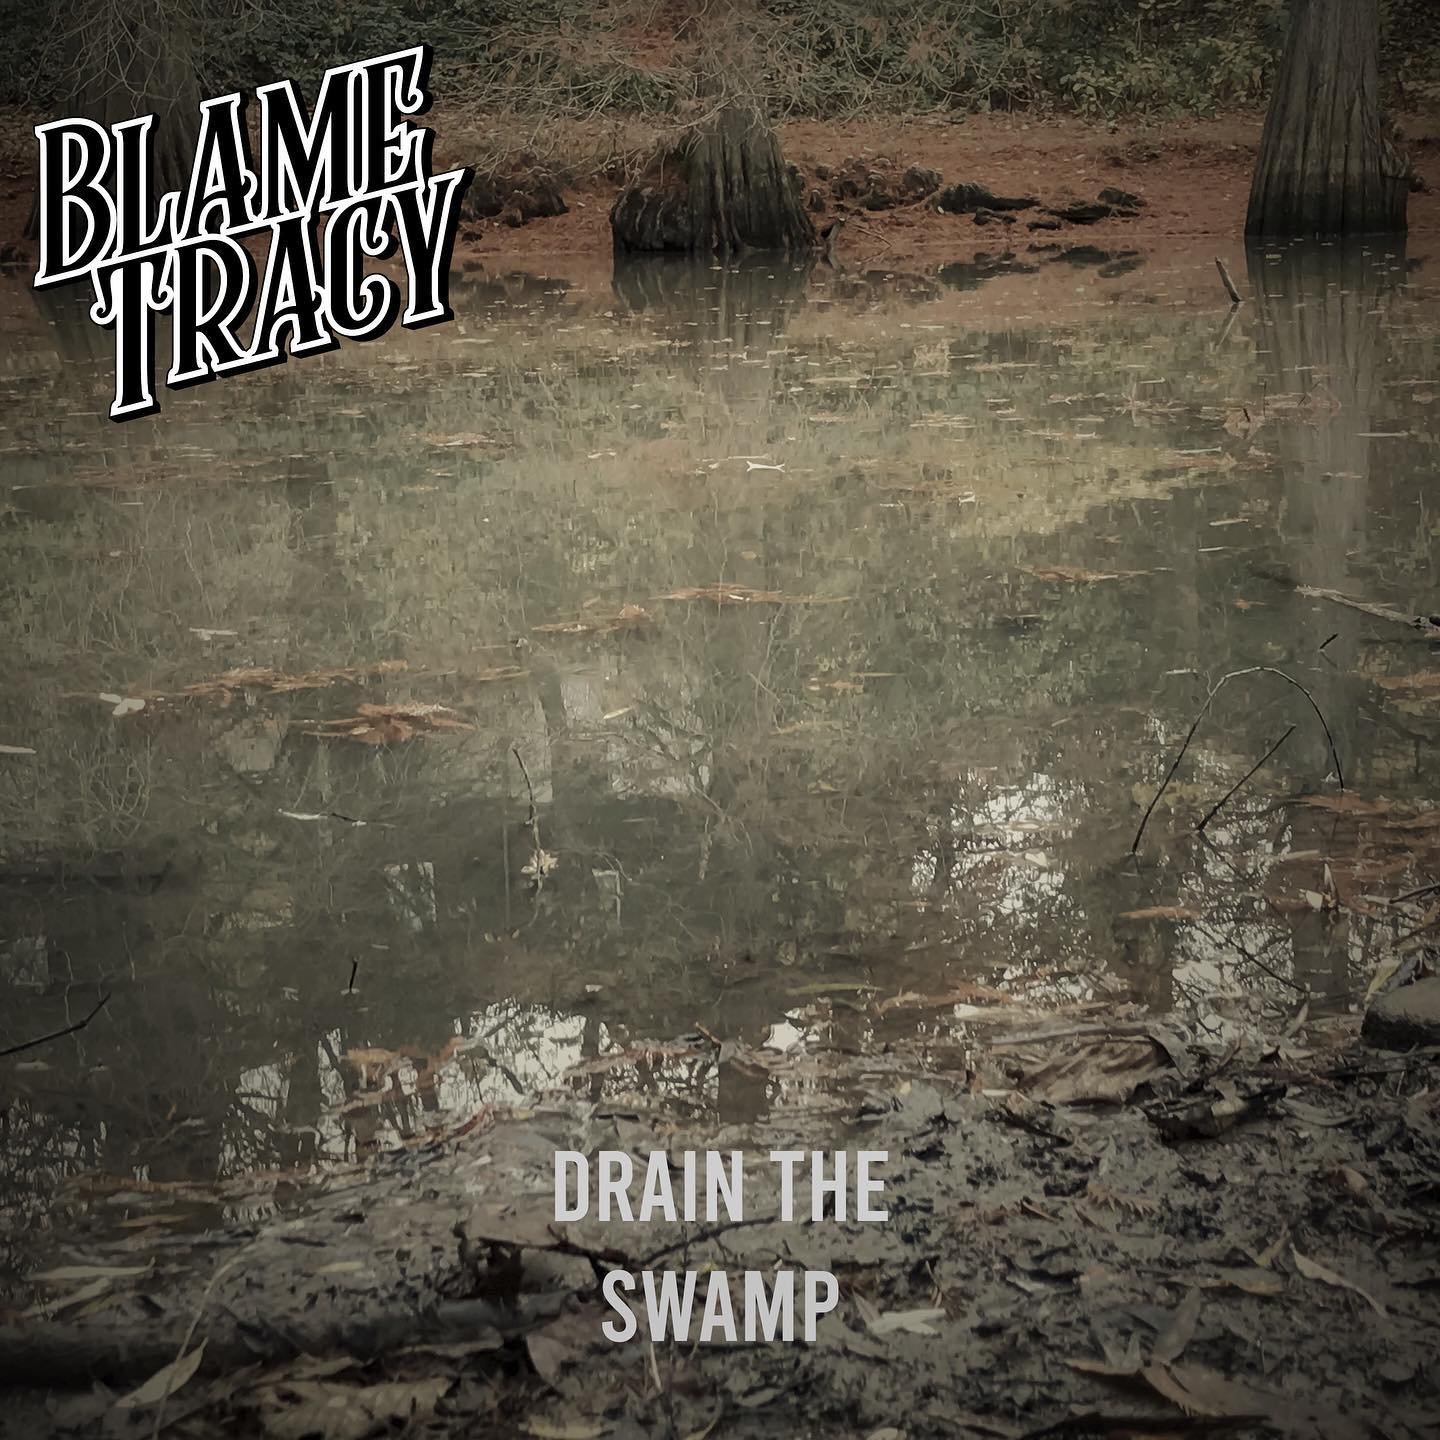 """Blame Tracy """"Drain The Swamp"""""""